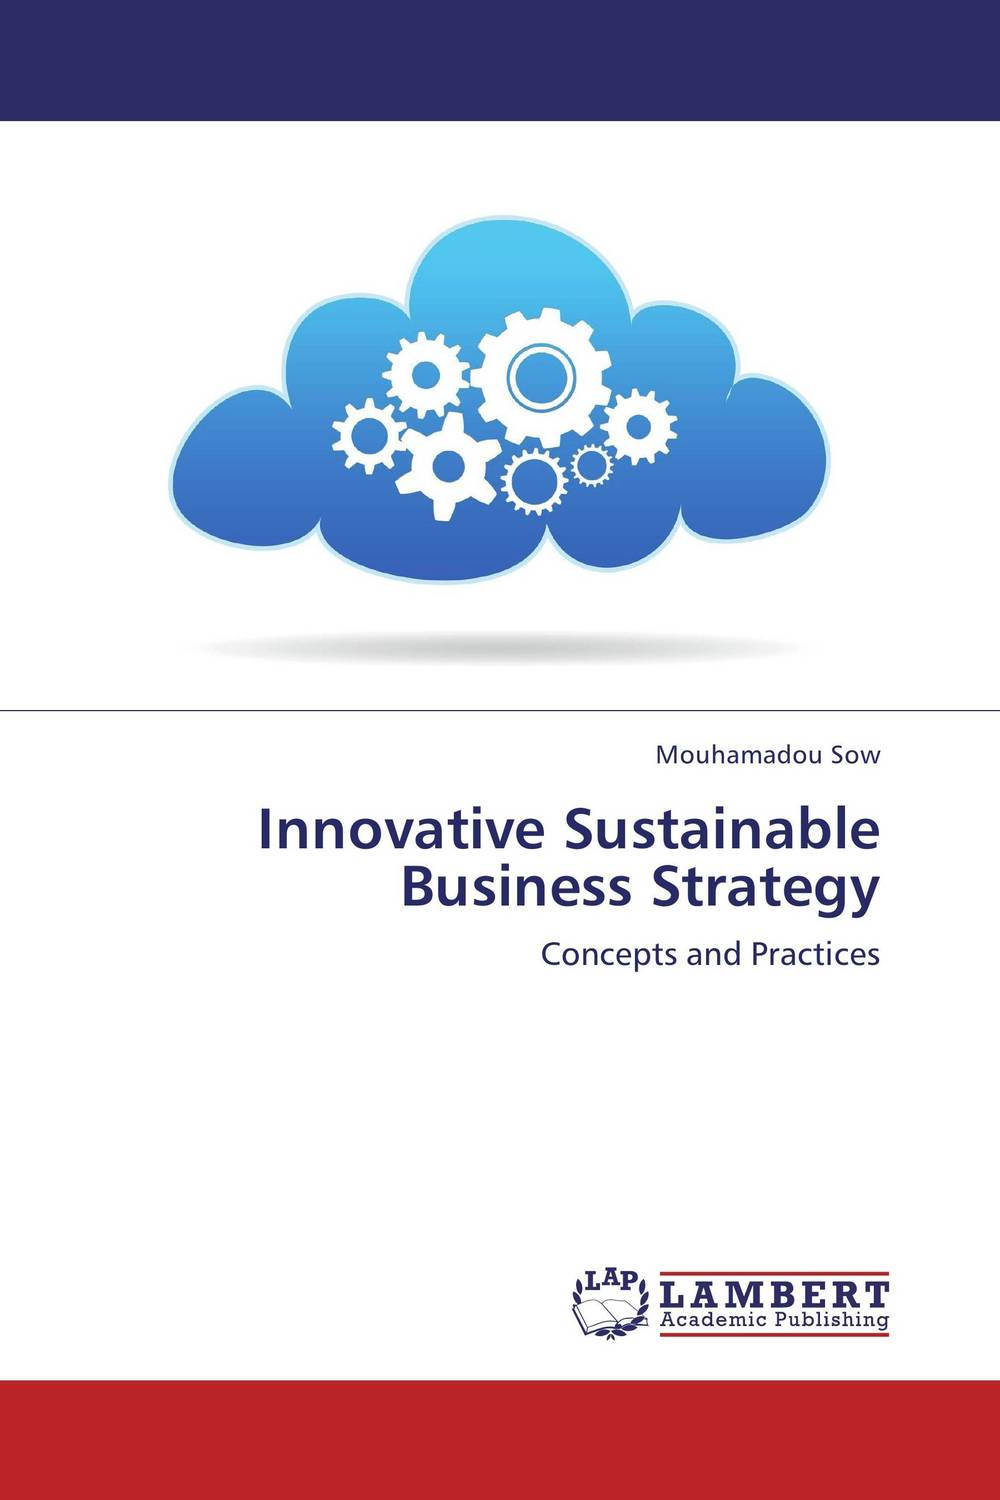 Innovative Sustainable Business Strategy jeffrey sampler l bringing strategy back how strategic shock absorbers make planning relevant in a world of constant change